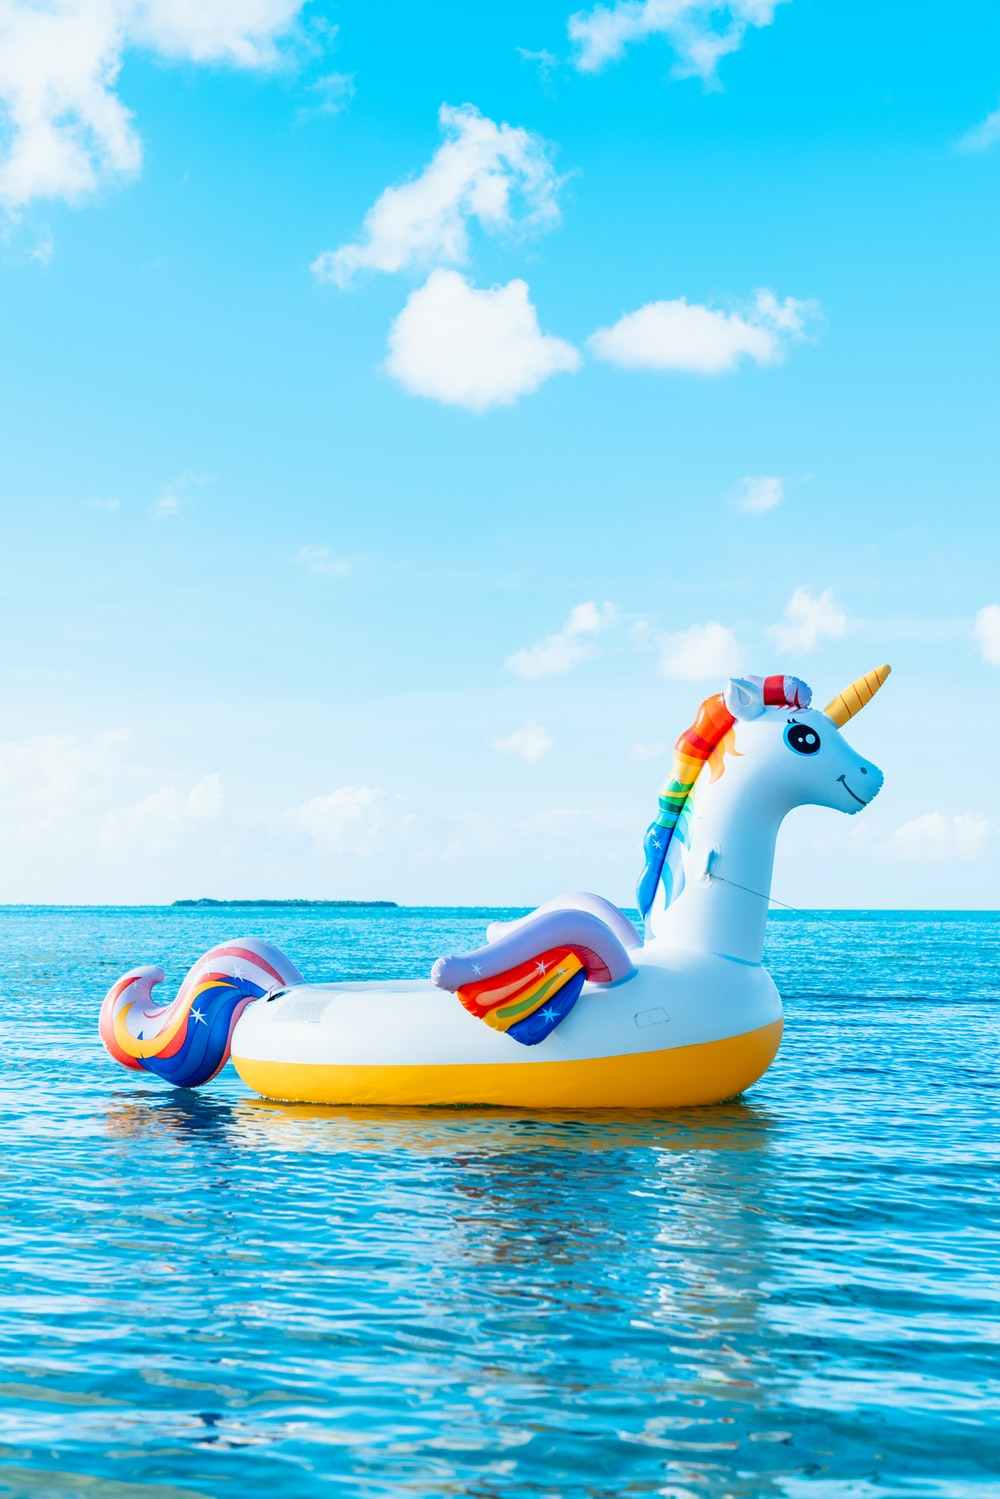 yellow and blue inflatable duck on blue sea under blue sky during daytime